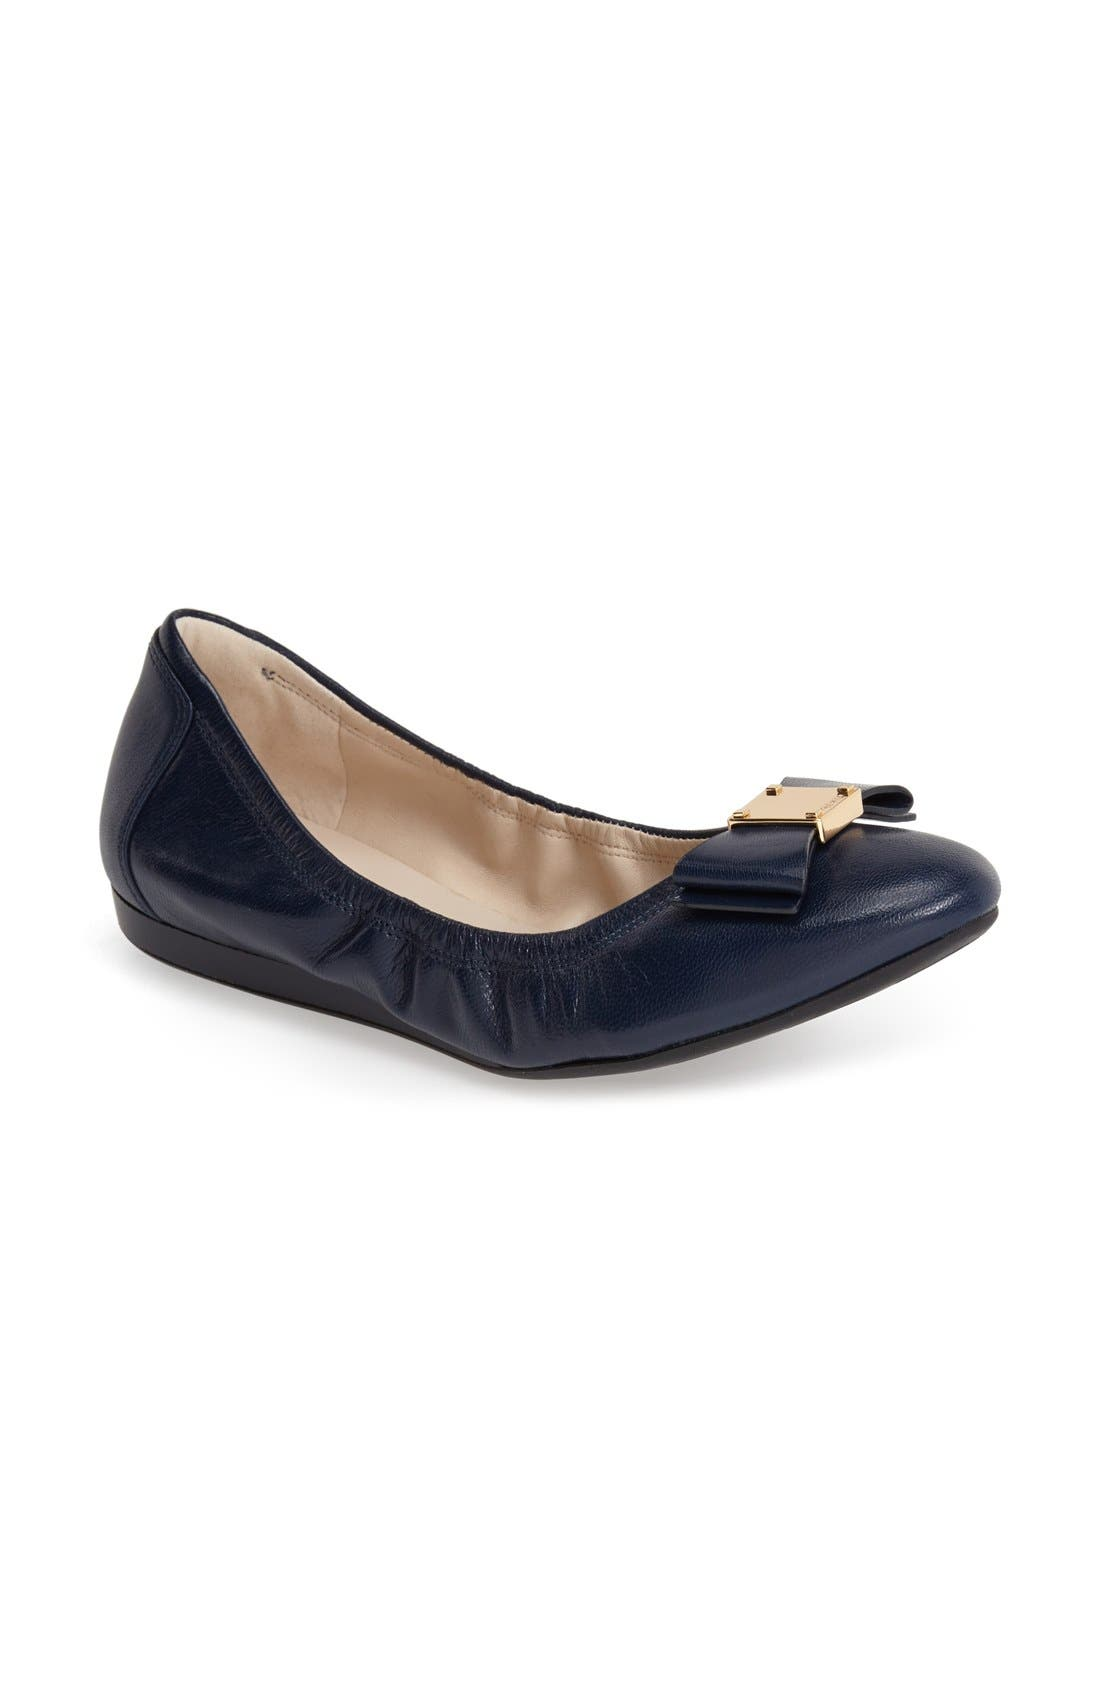 'Tali' Leather Ballet Flat,                         Main,                         color,